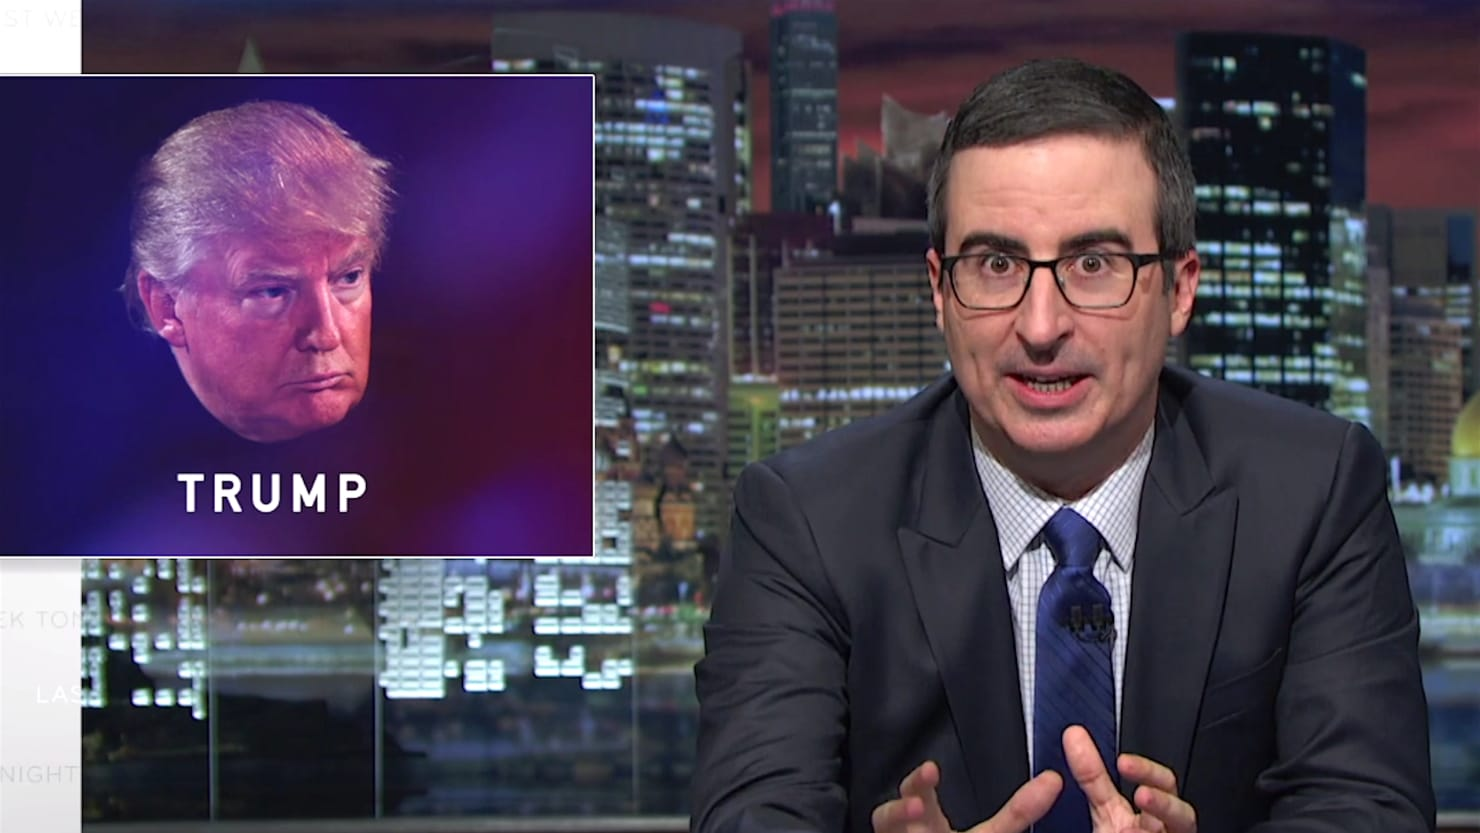 John Oliver to Trump: 'Drop Out' Now and 'You Would Be a Legend'